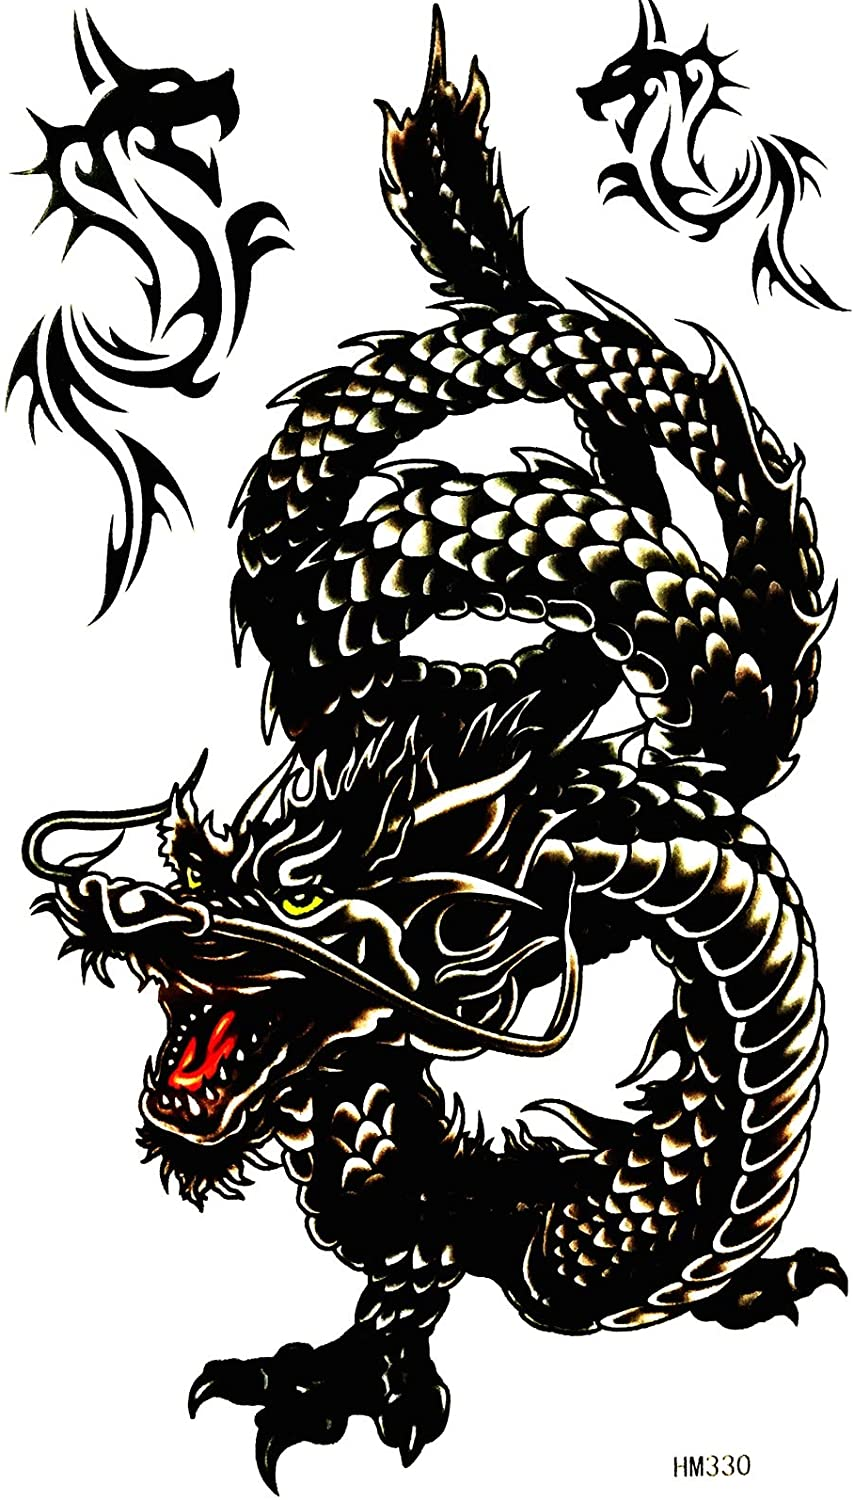 The dragon is a magical animal of China and the West 4X8 in MEGADEE Tattoo Sticker Body Arm Leg Body Art Beauty Makeup Cool Removable Waterproof Tattoo Sticker Great as happy gift (Tattoo Sticker 083)